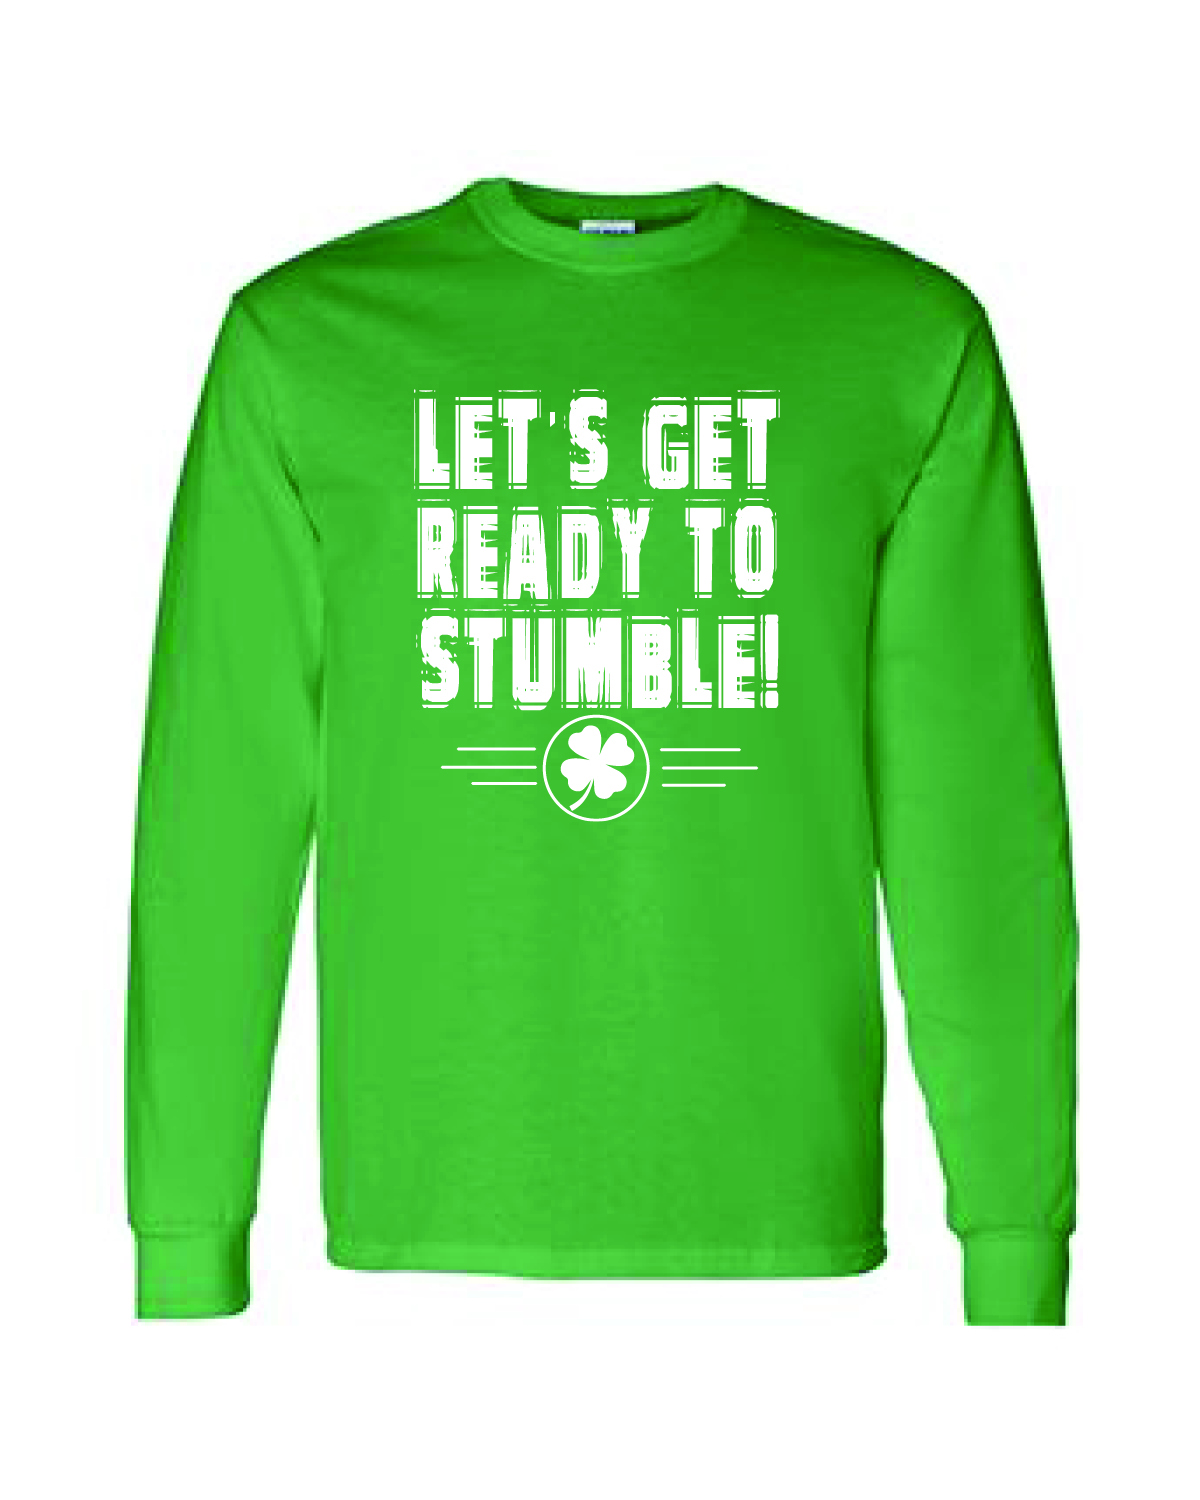 St. Patty's Day Long Sleeve Tee - Ready To Stumble